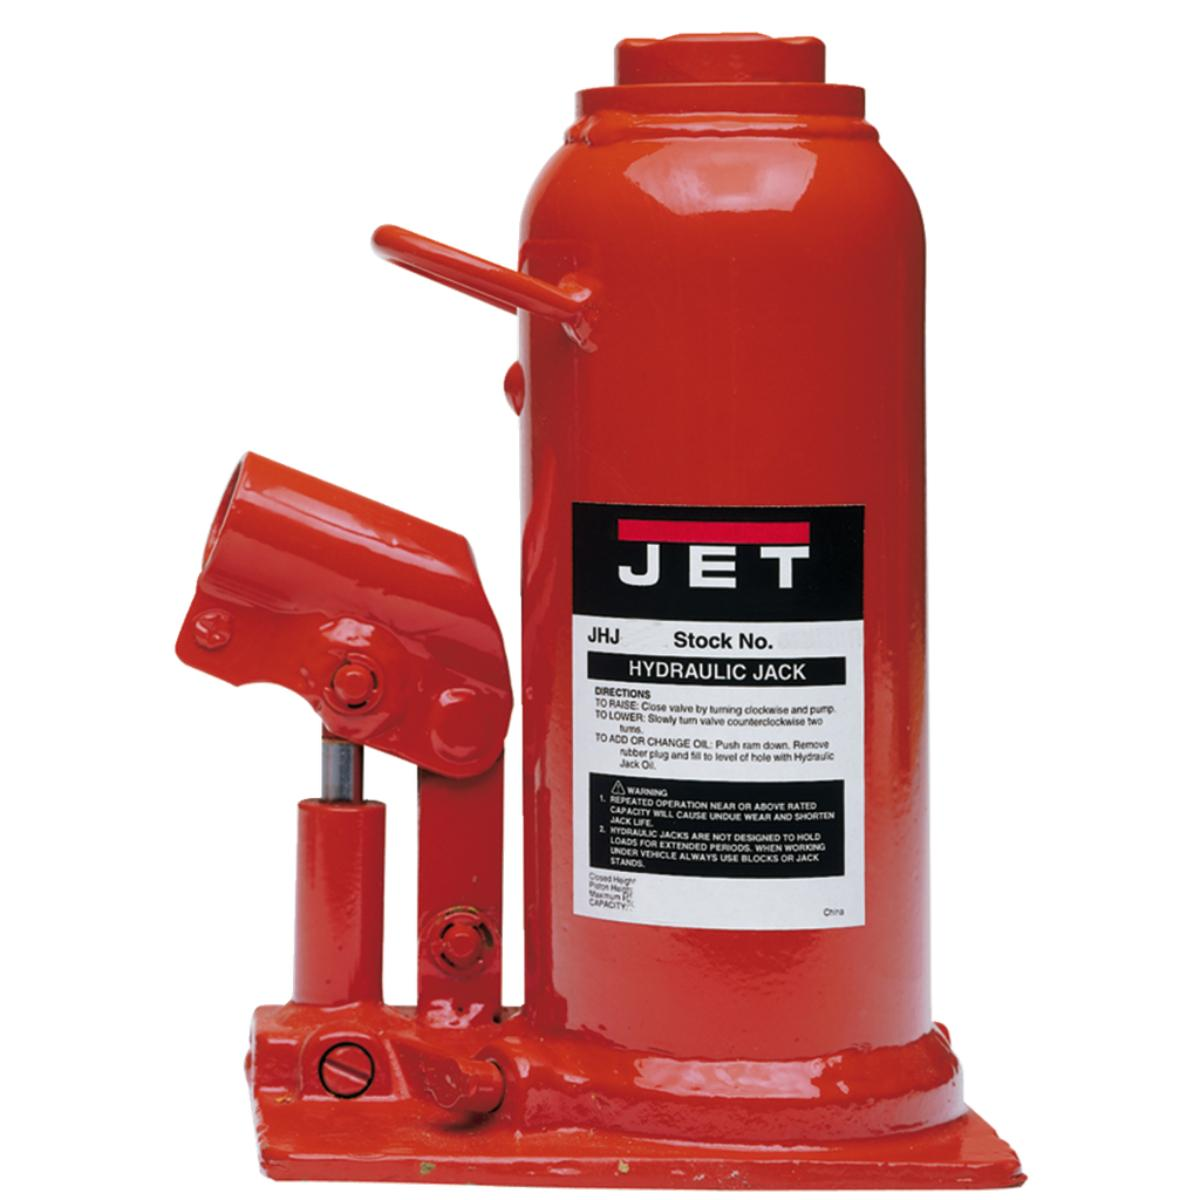 JHJ-12-1/2 12-1/2T HYD BOTTLE JACK